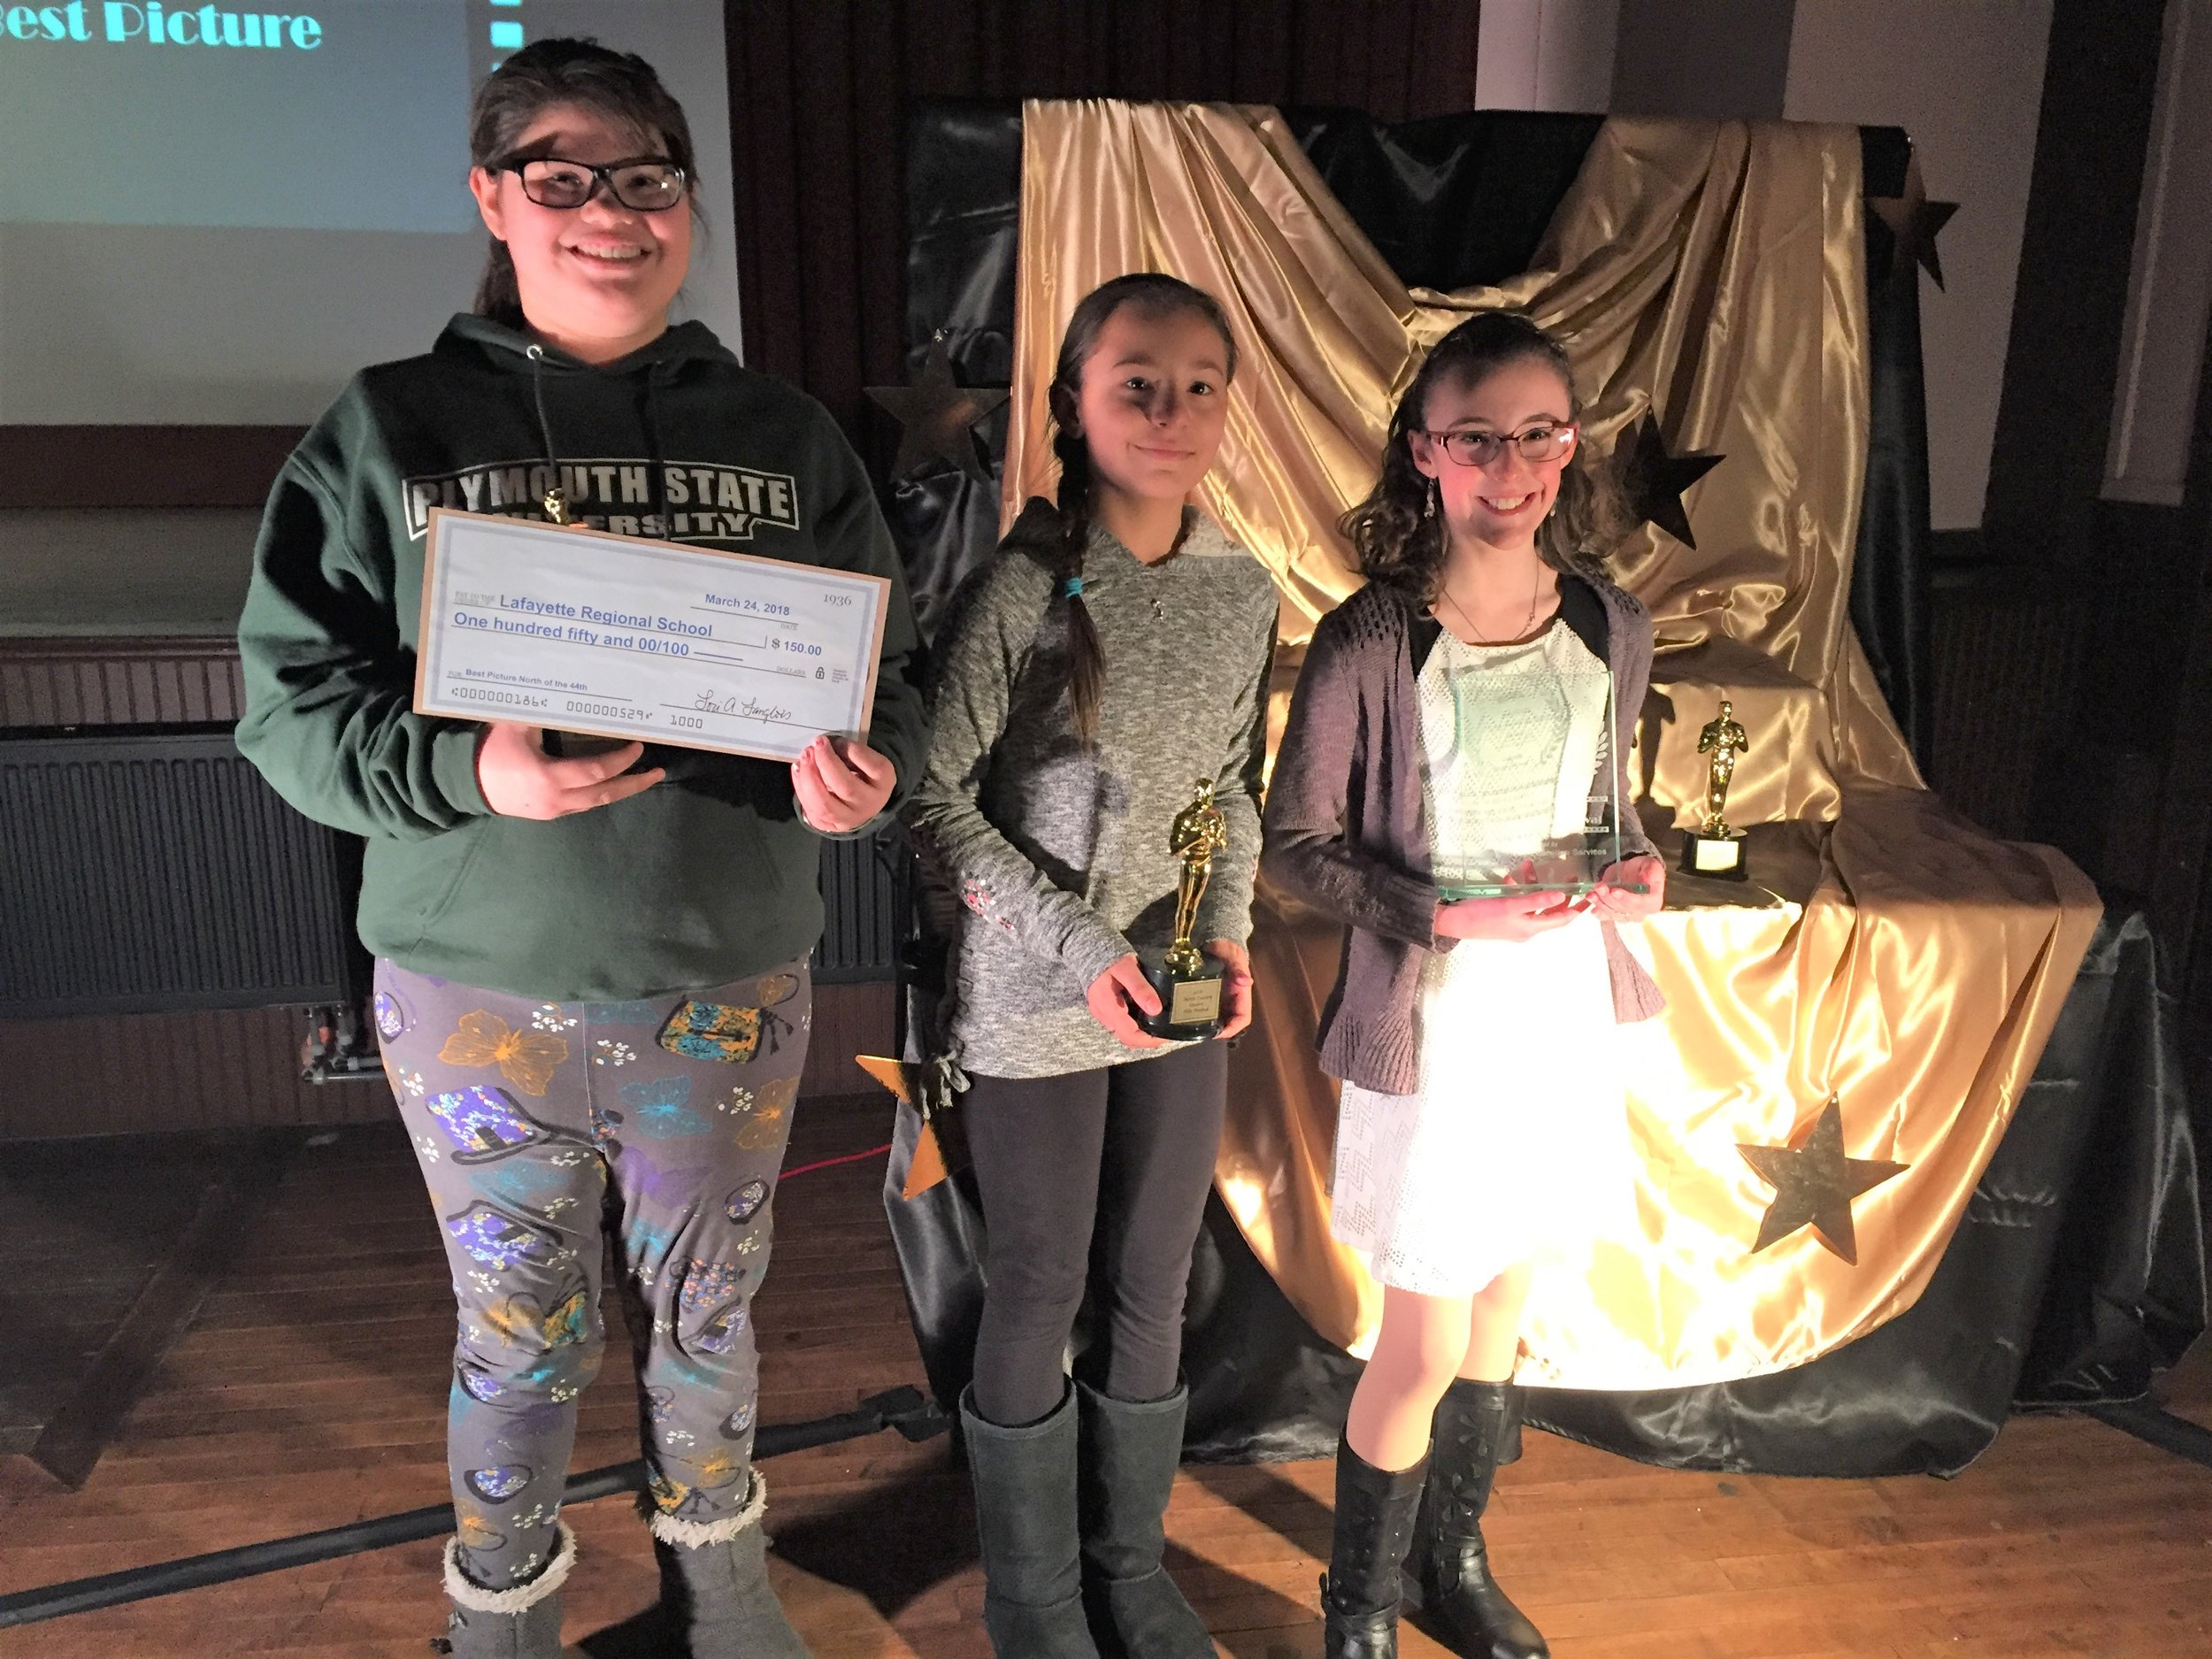 Winner: Best Picture North of the 44th    Sledventures: Keeping Fun in the Family  by Lafayette Regional School